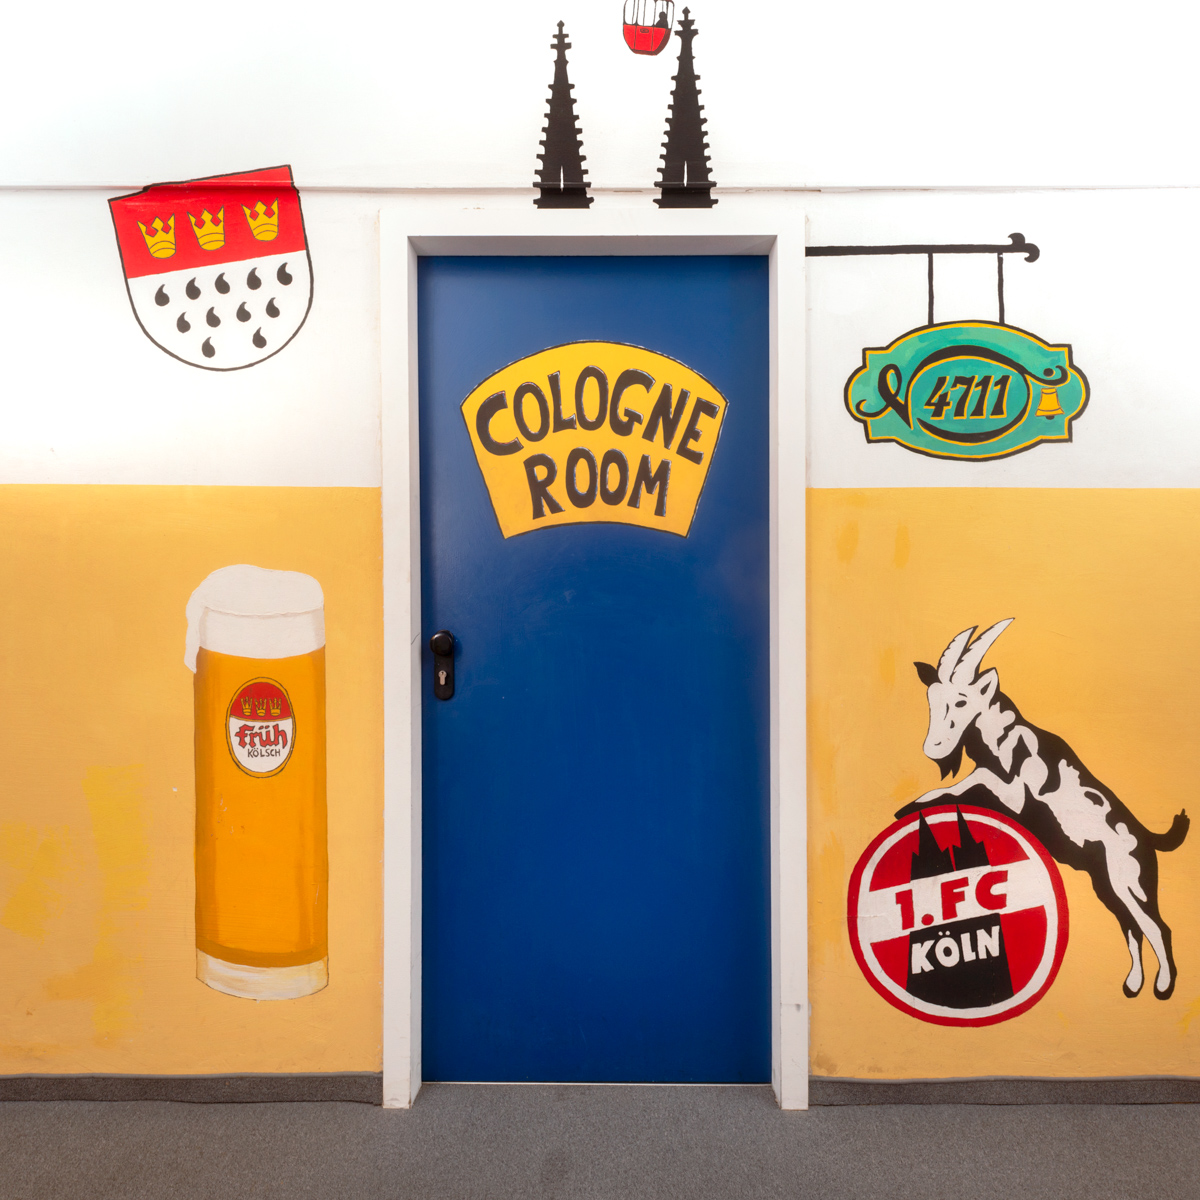 Door of the Cologne room